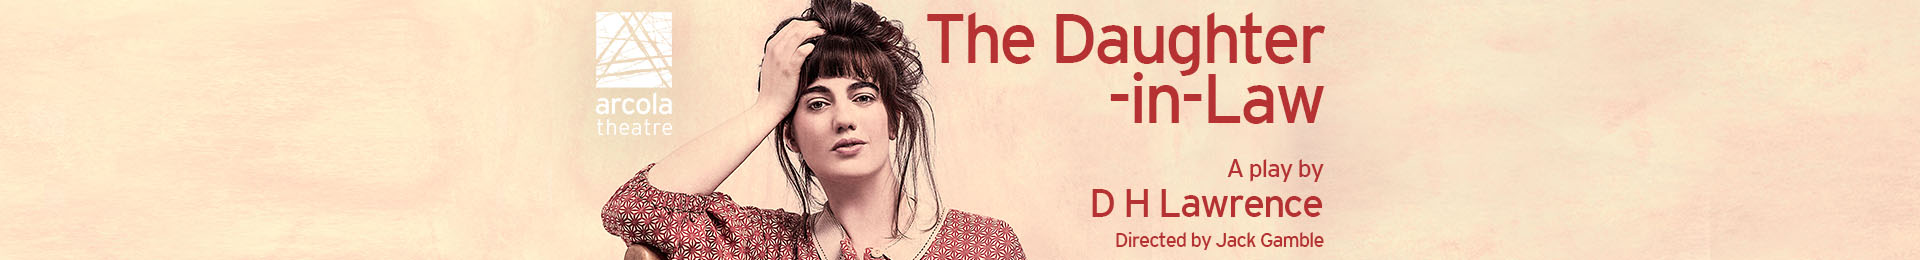 The Daughter-in-Law banner image